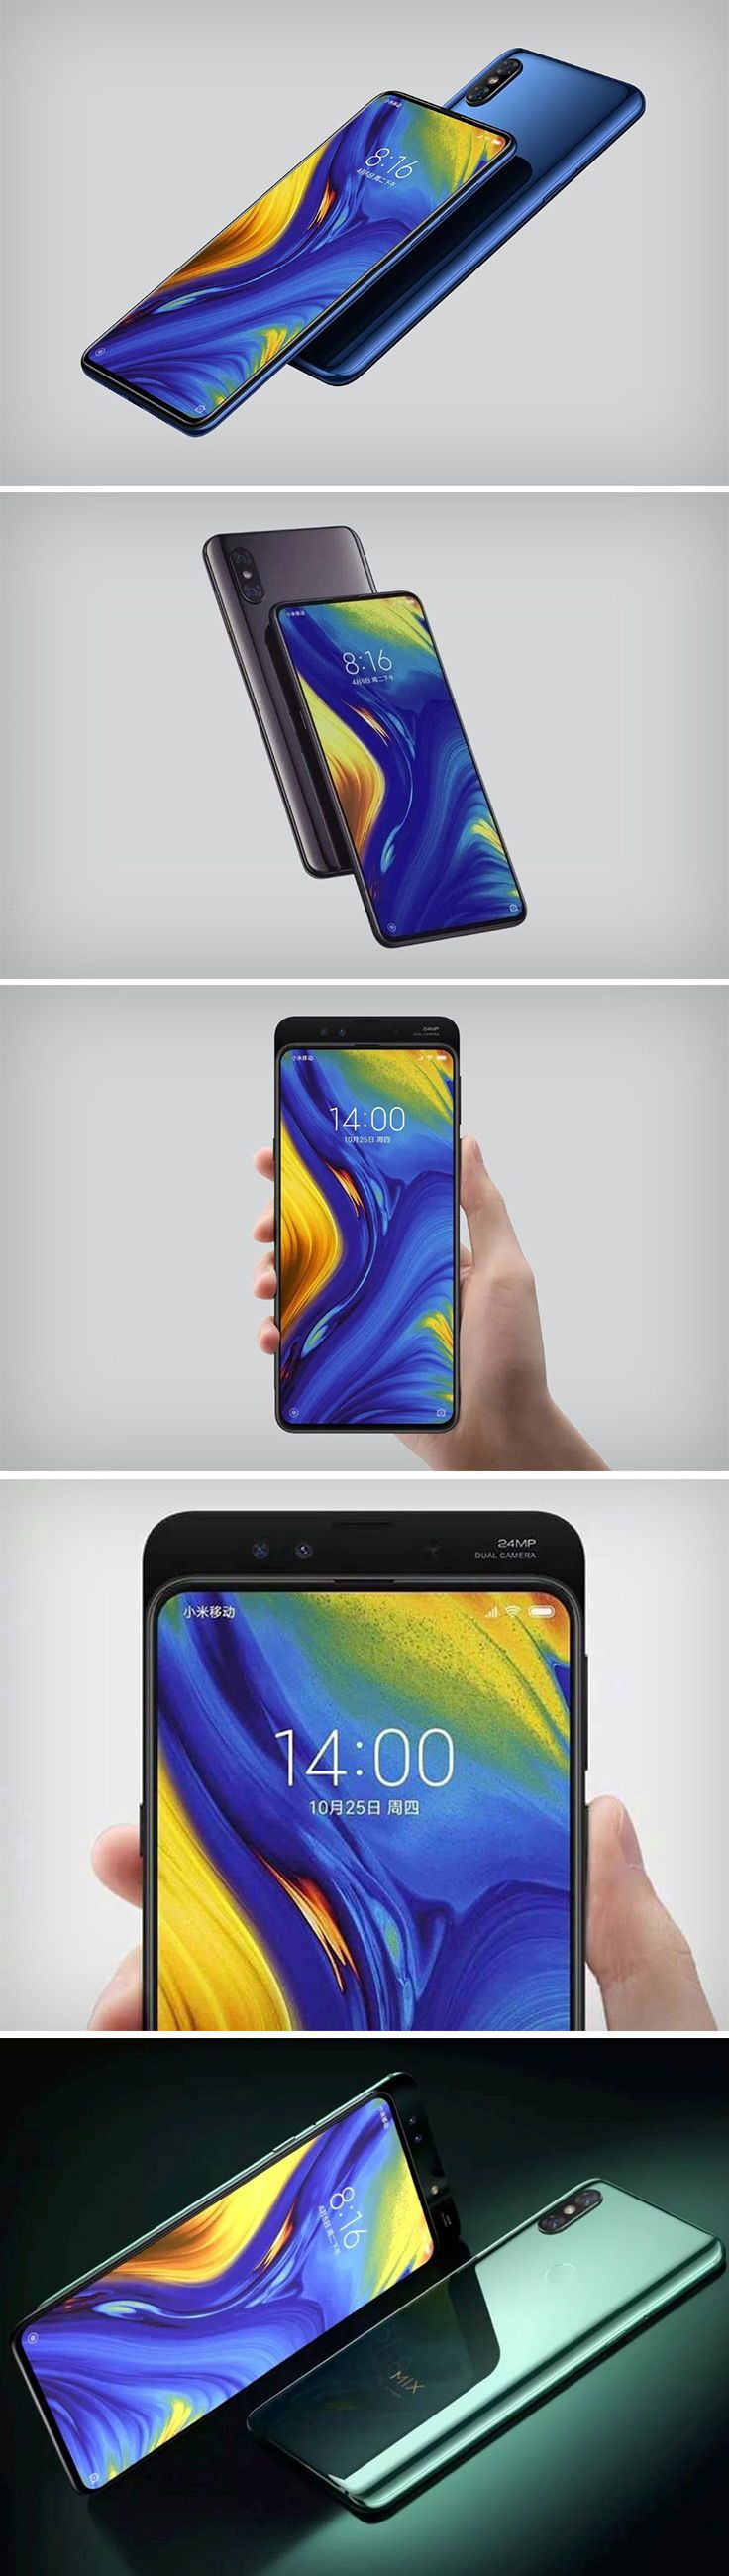 The Mi Mix 3 Comes With Absolutely No Sign Of A Notch As The Camera Gets Mounted On A Sliding Component At The Back Much Like O Xiaomi Camera Phone Finding X